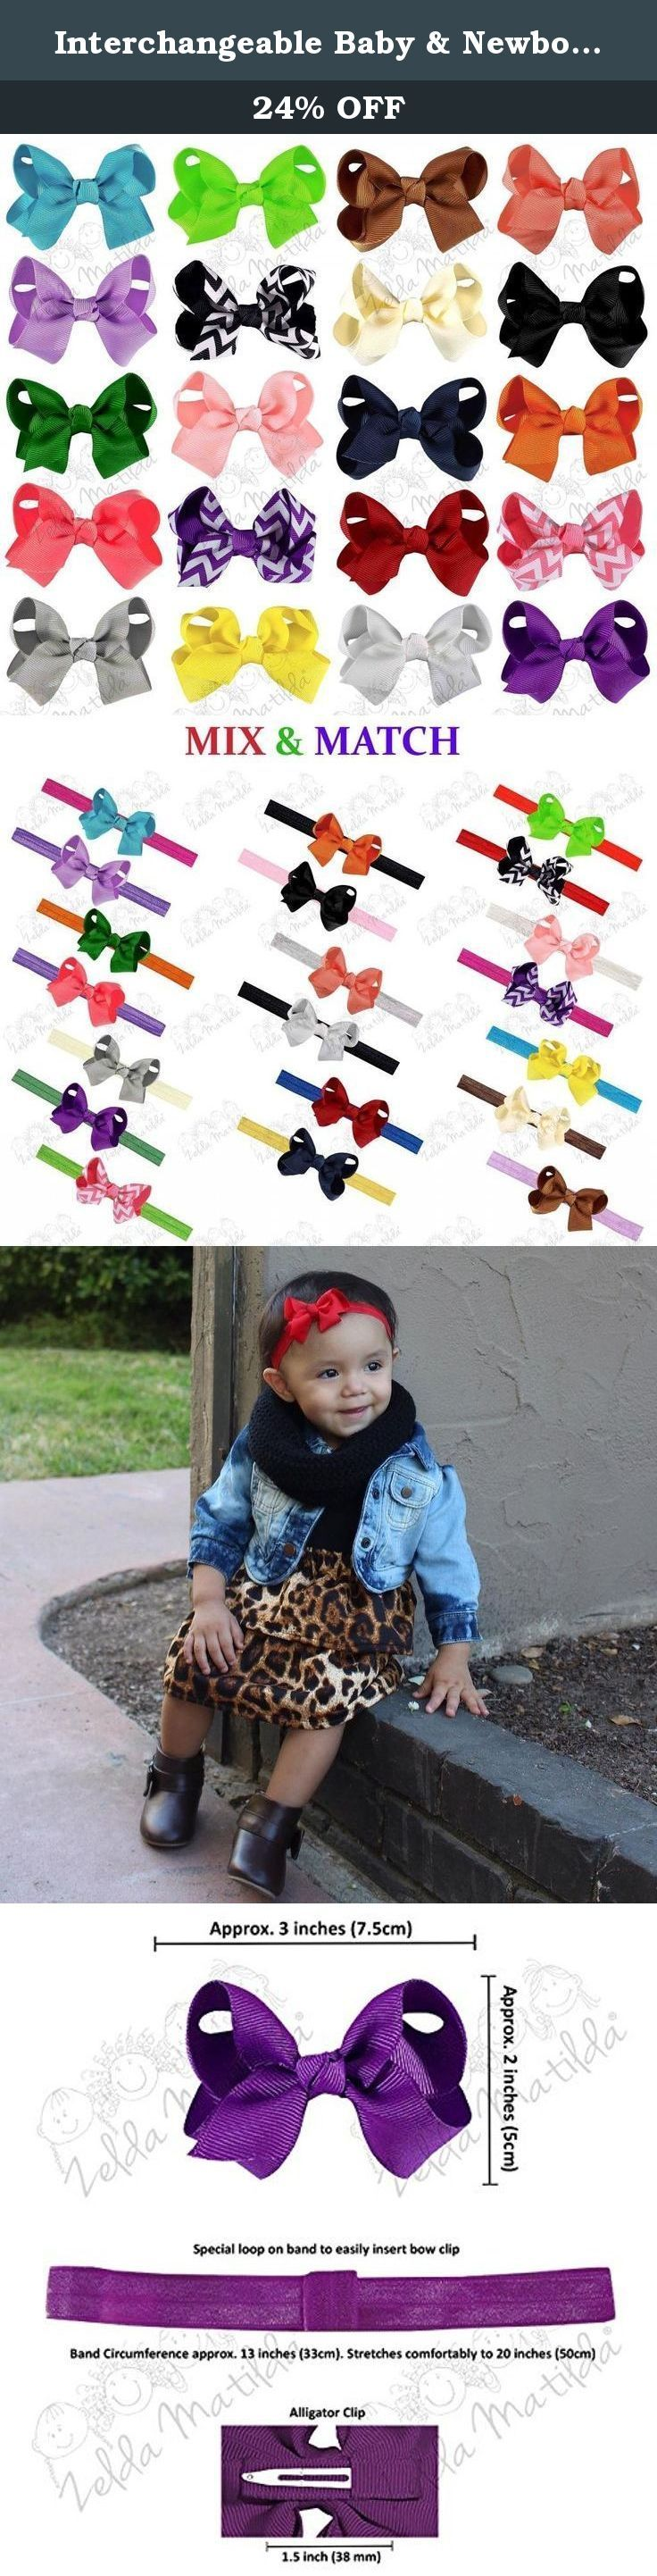 Interchangeable Baby & Newborn Bows and Headbands Set by ZELDA MATILDA (40 Pack) - Attach Bow to Super Stretchy Headband or Use Separately! Great For Babies and Kids - Boutique quality!. Interchangeable 20 Bow and 20 Headband Set by ZELDA MATILDA Use the Bows Attached to The Super Soft and Stretchy Headbands or Wear Separately! Are You Tired of Wasting Money on Low Quality Accessories That Fall Apart or Are Not Well Made? Don't You Wish There Was a Way to Buy Boutique Bows and Headbands at…